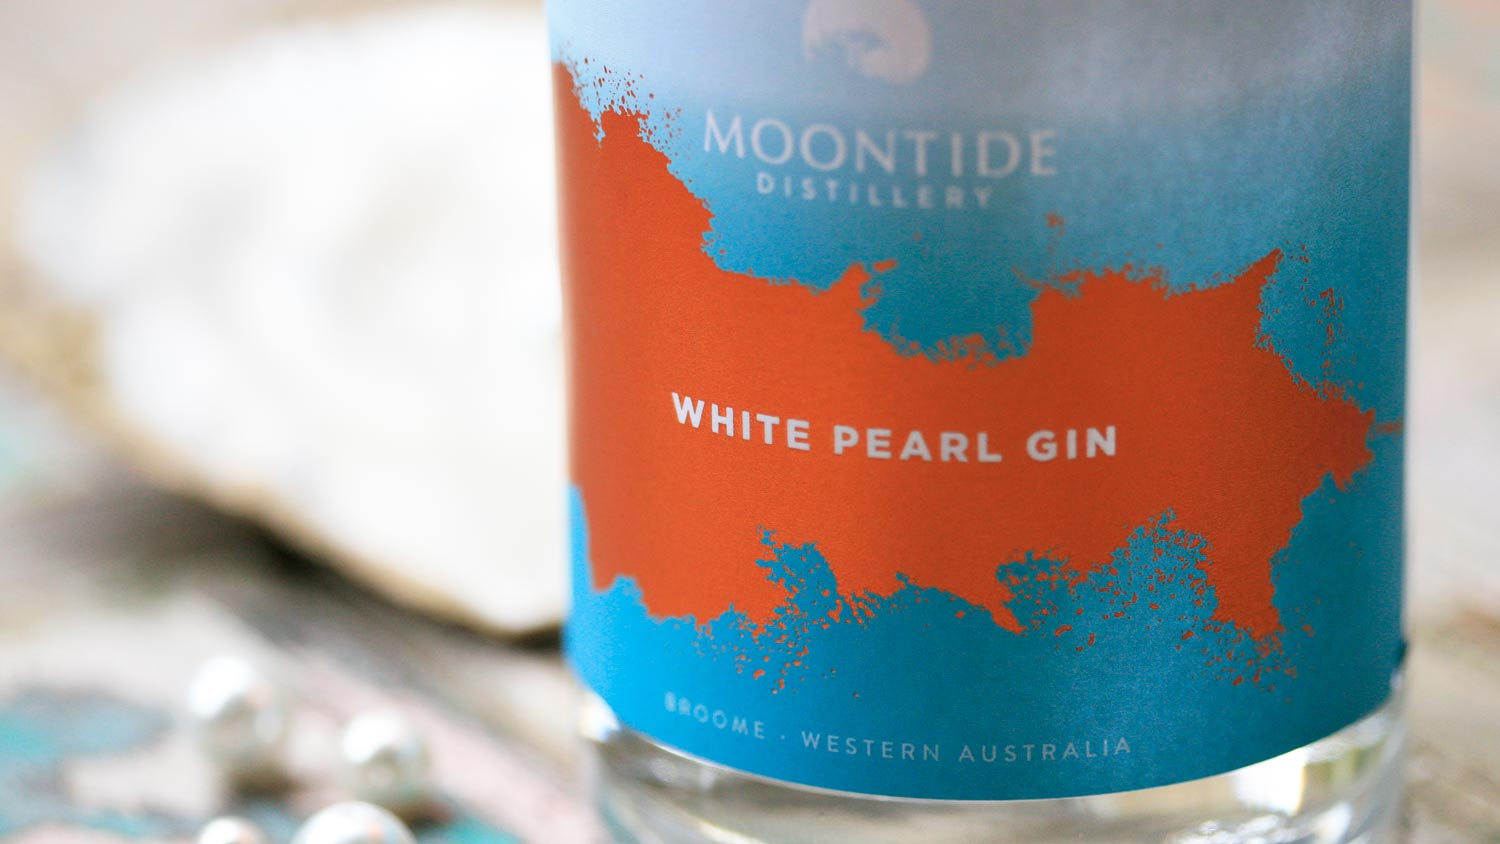 Branding a gin company based in Broome, Moontide Distillery